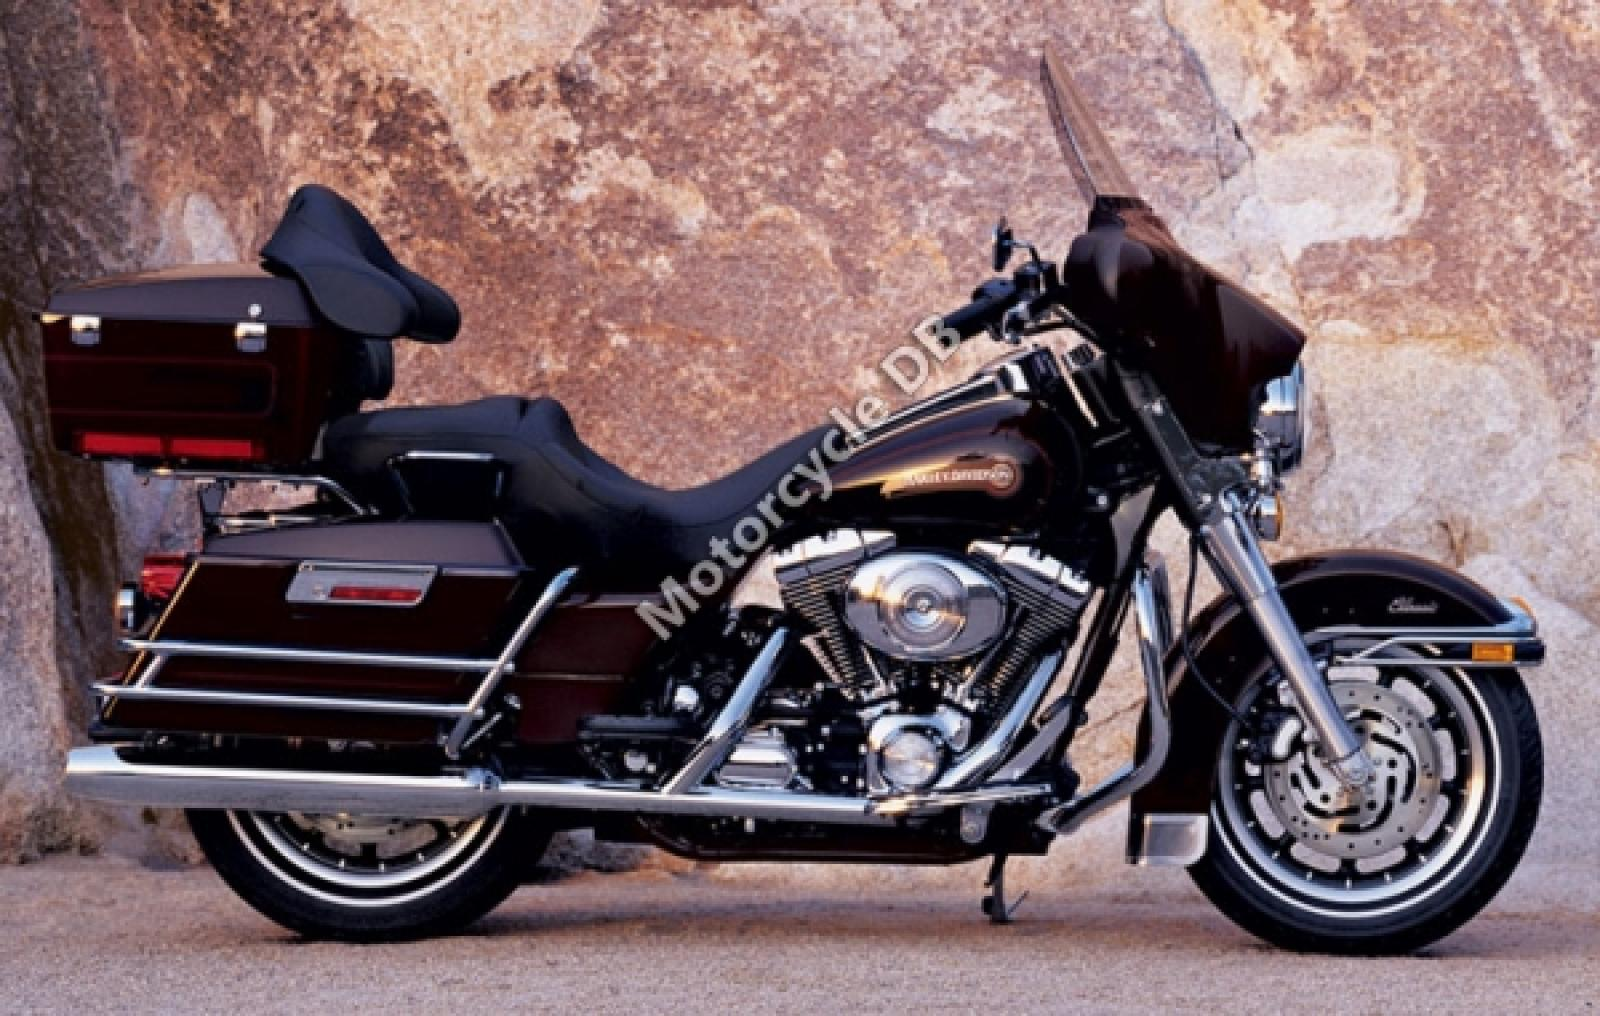 Harley-Davidson FLHTC 1340 Electra Glide Classic images #79791